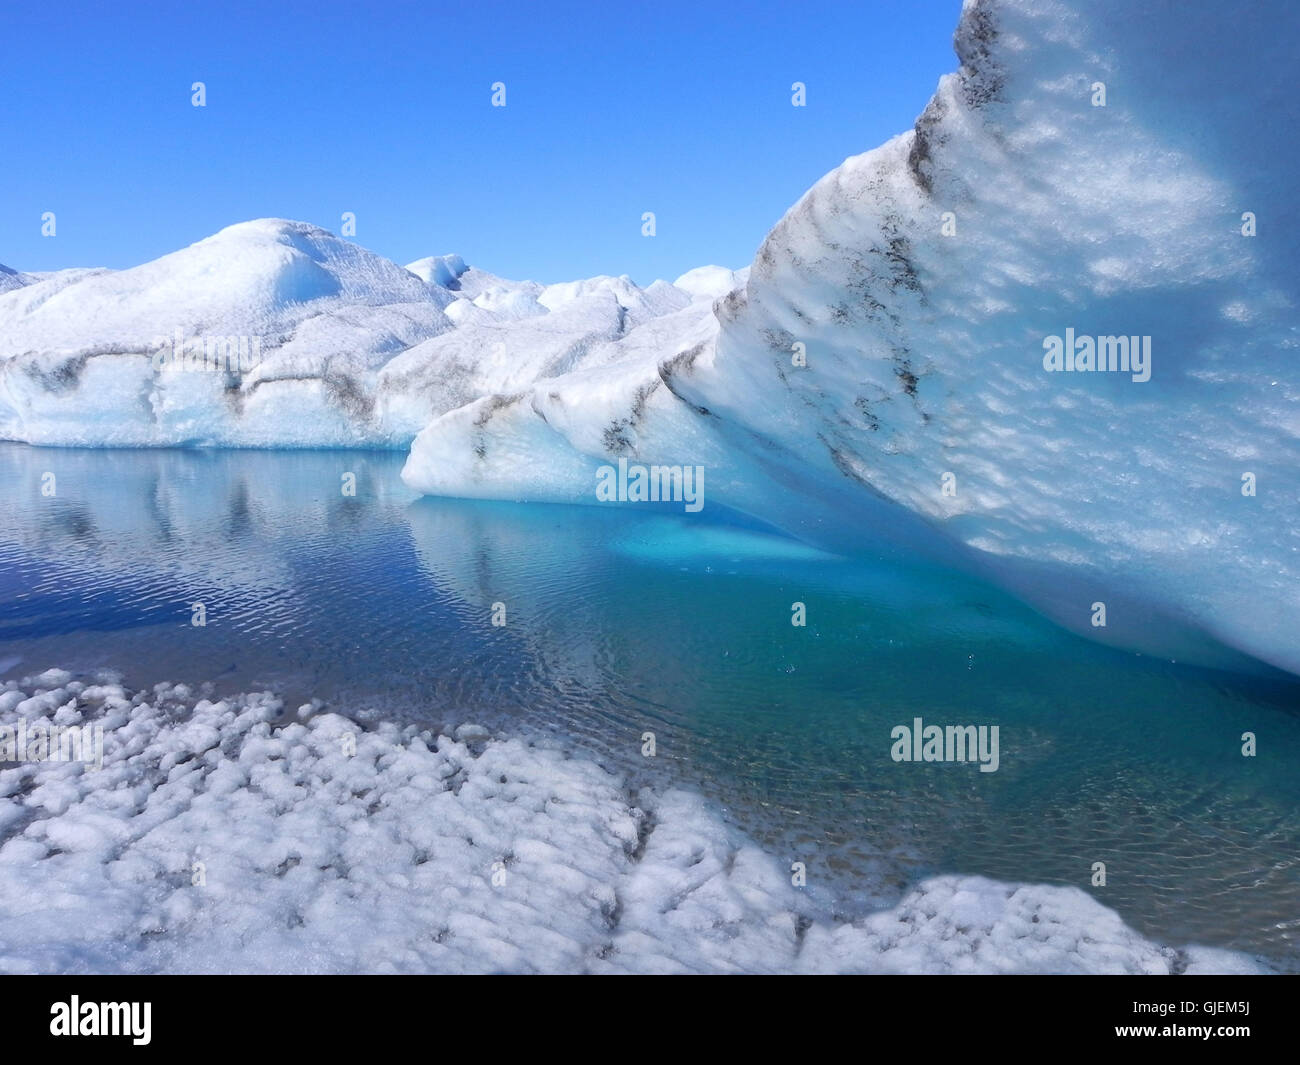 melting ice in greenland - ice cave with blue water - Stock Image